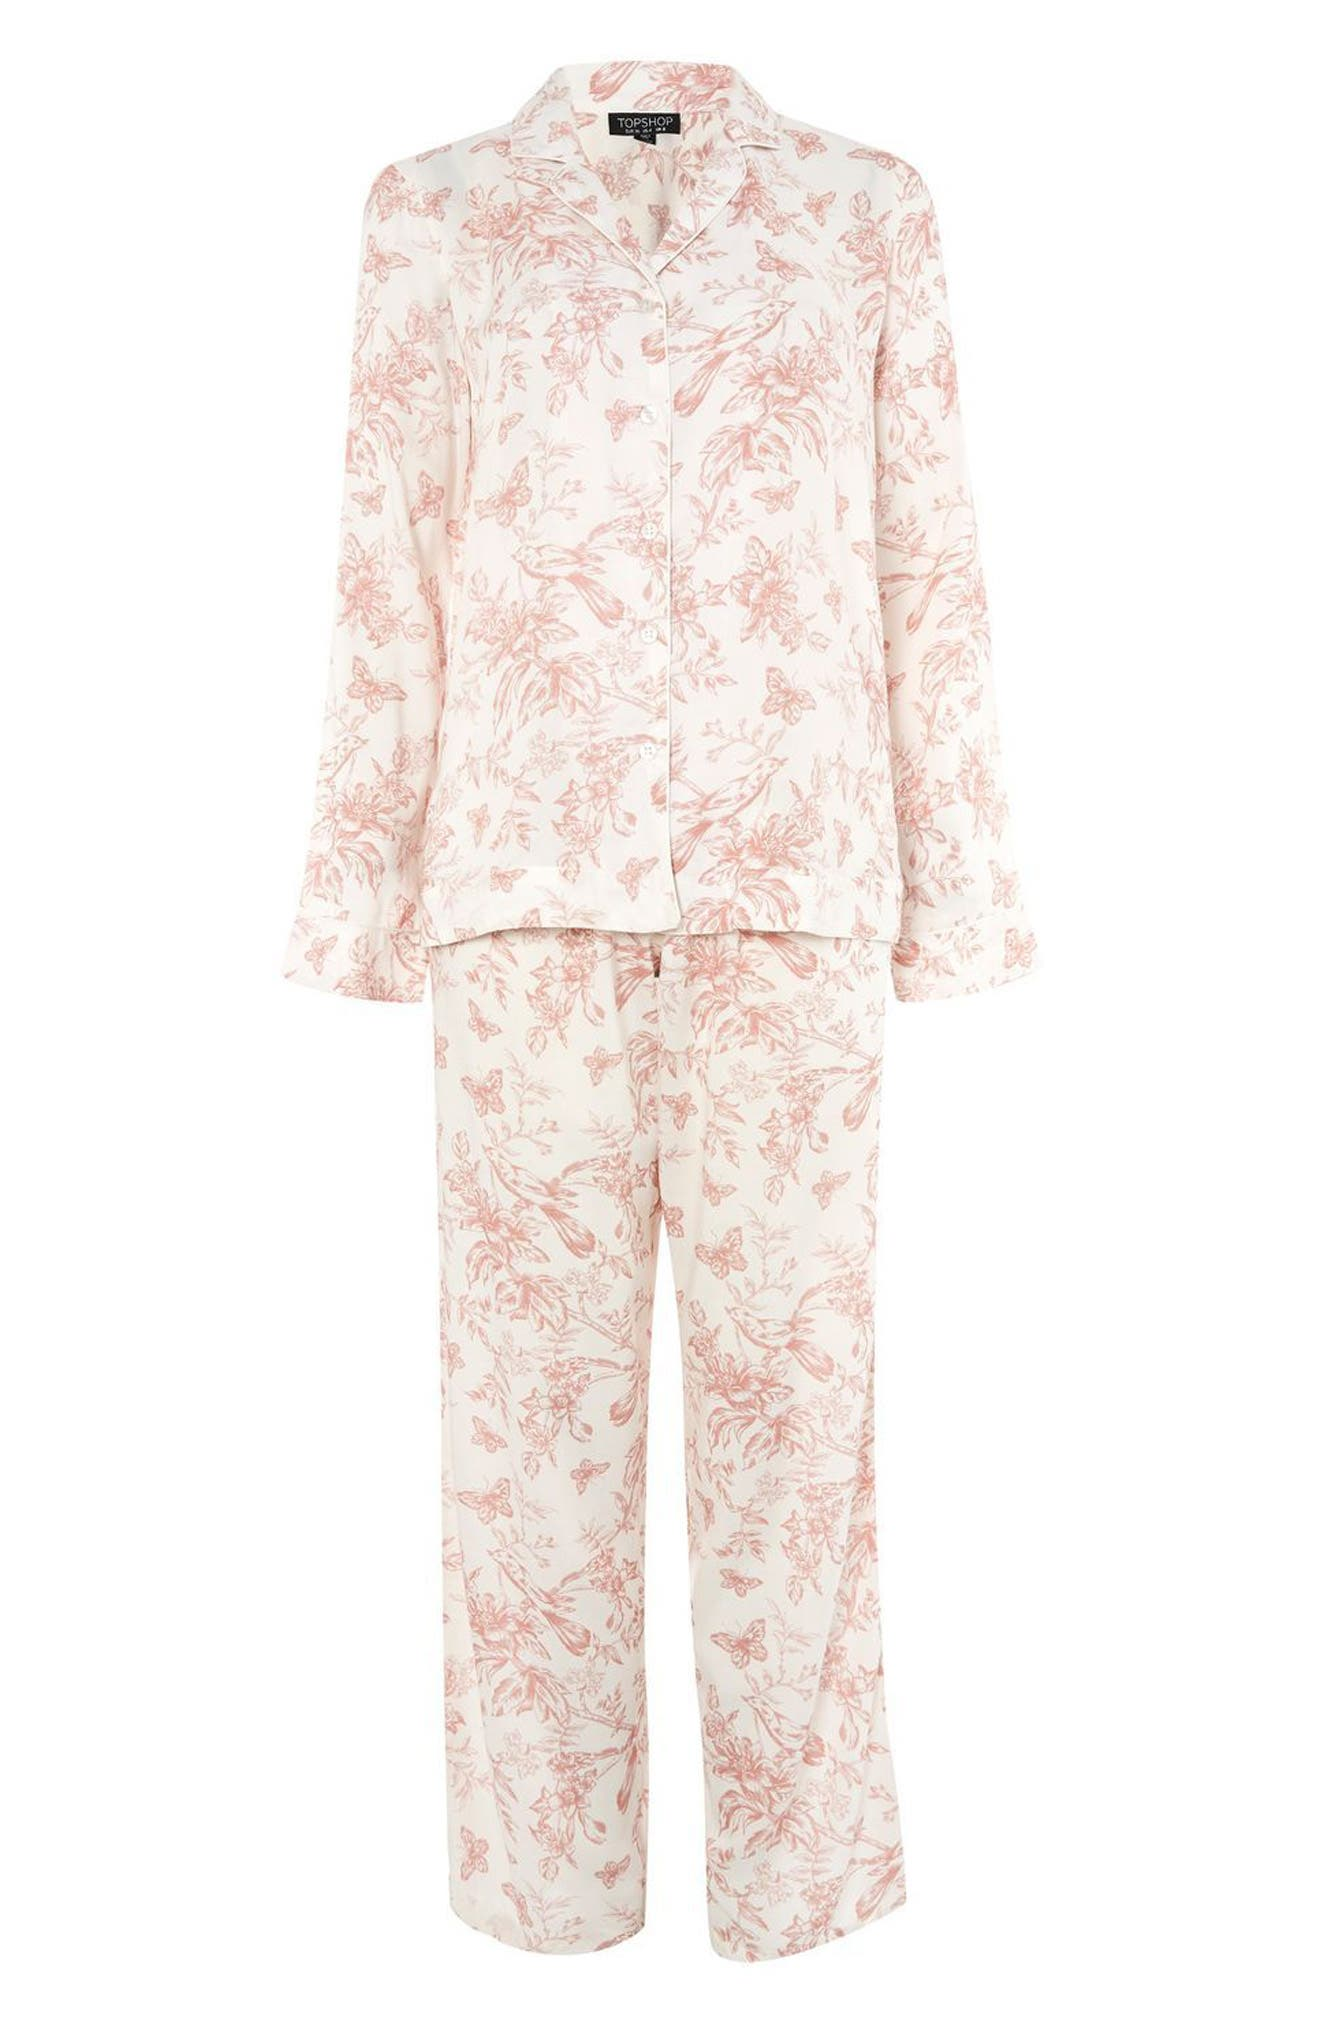 French Floral Pajamas,                             Alternate thumbnail 3, color,                             680